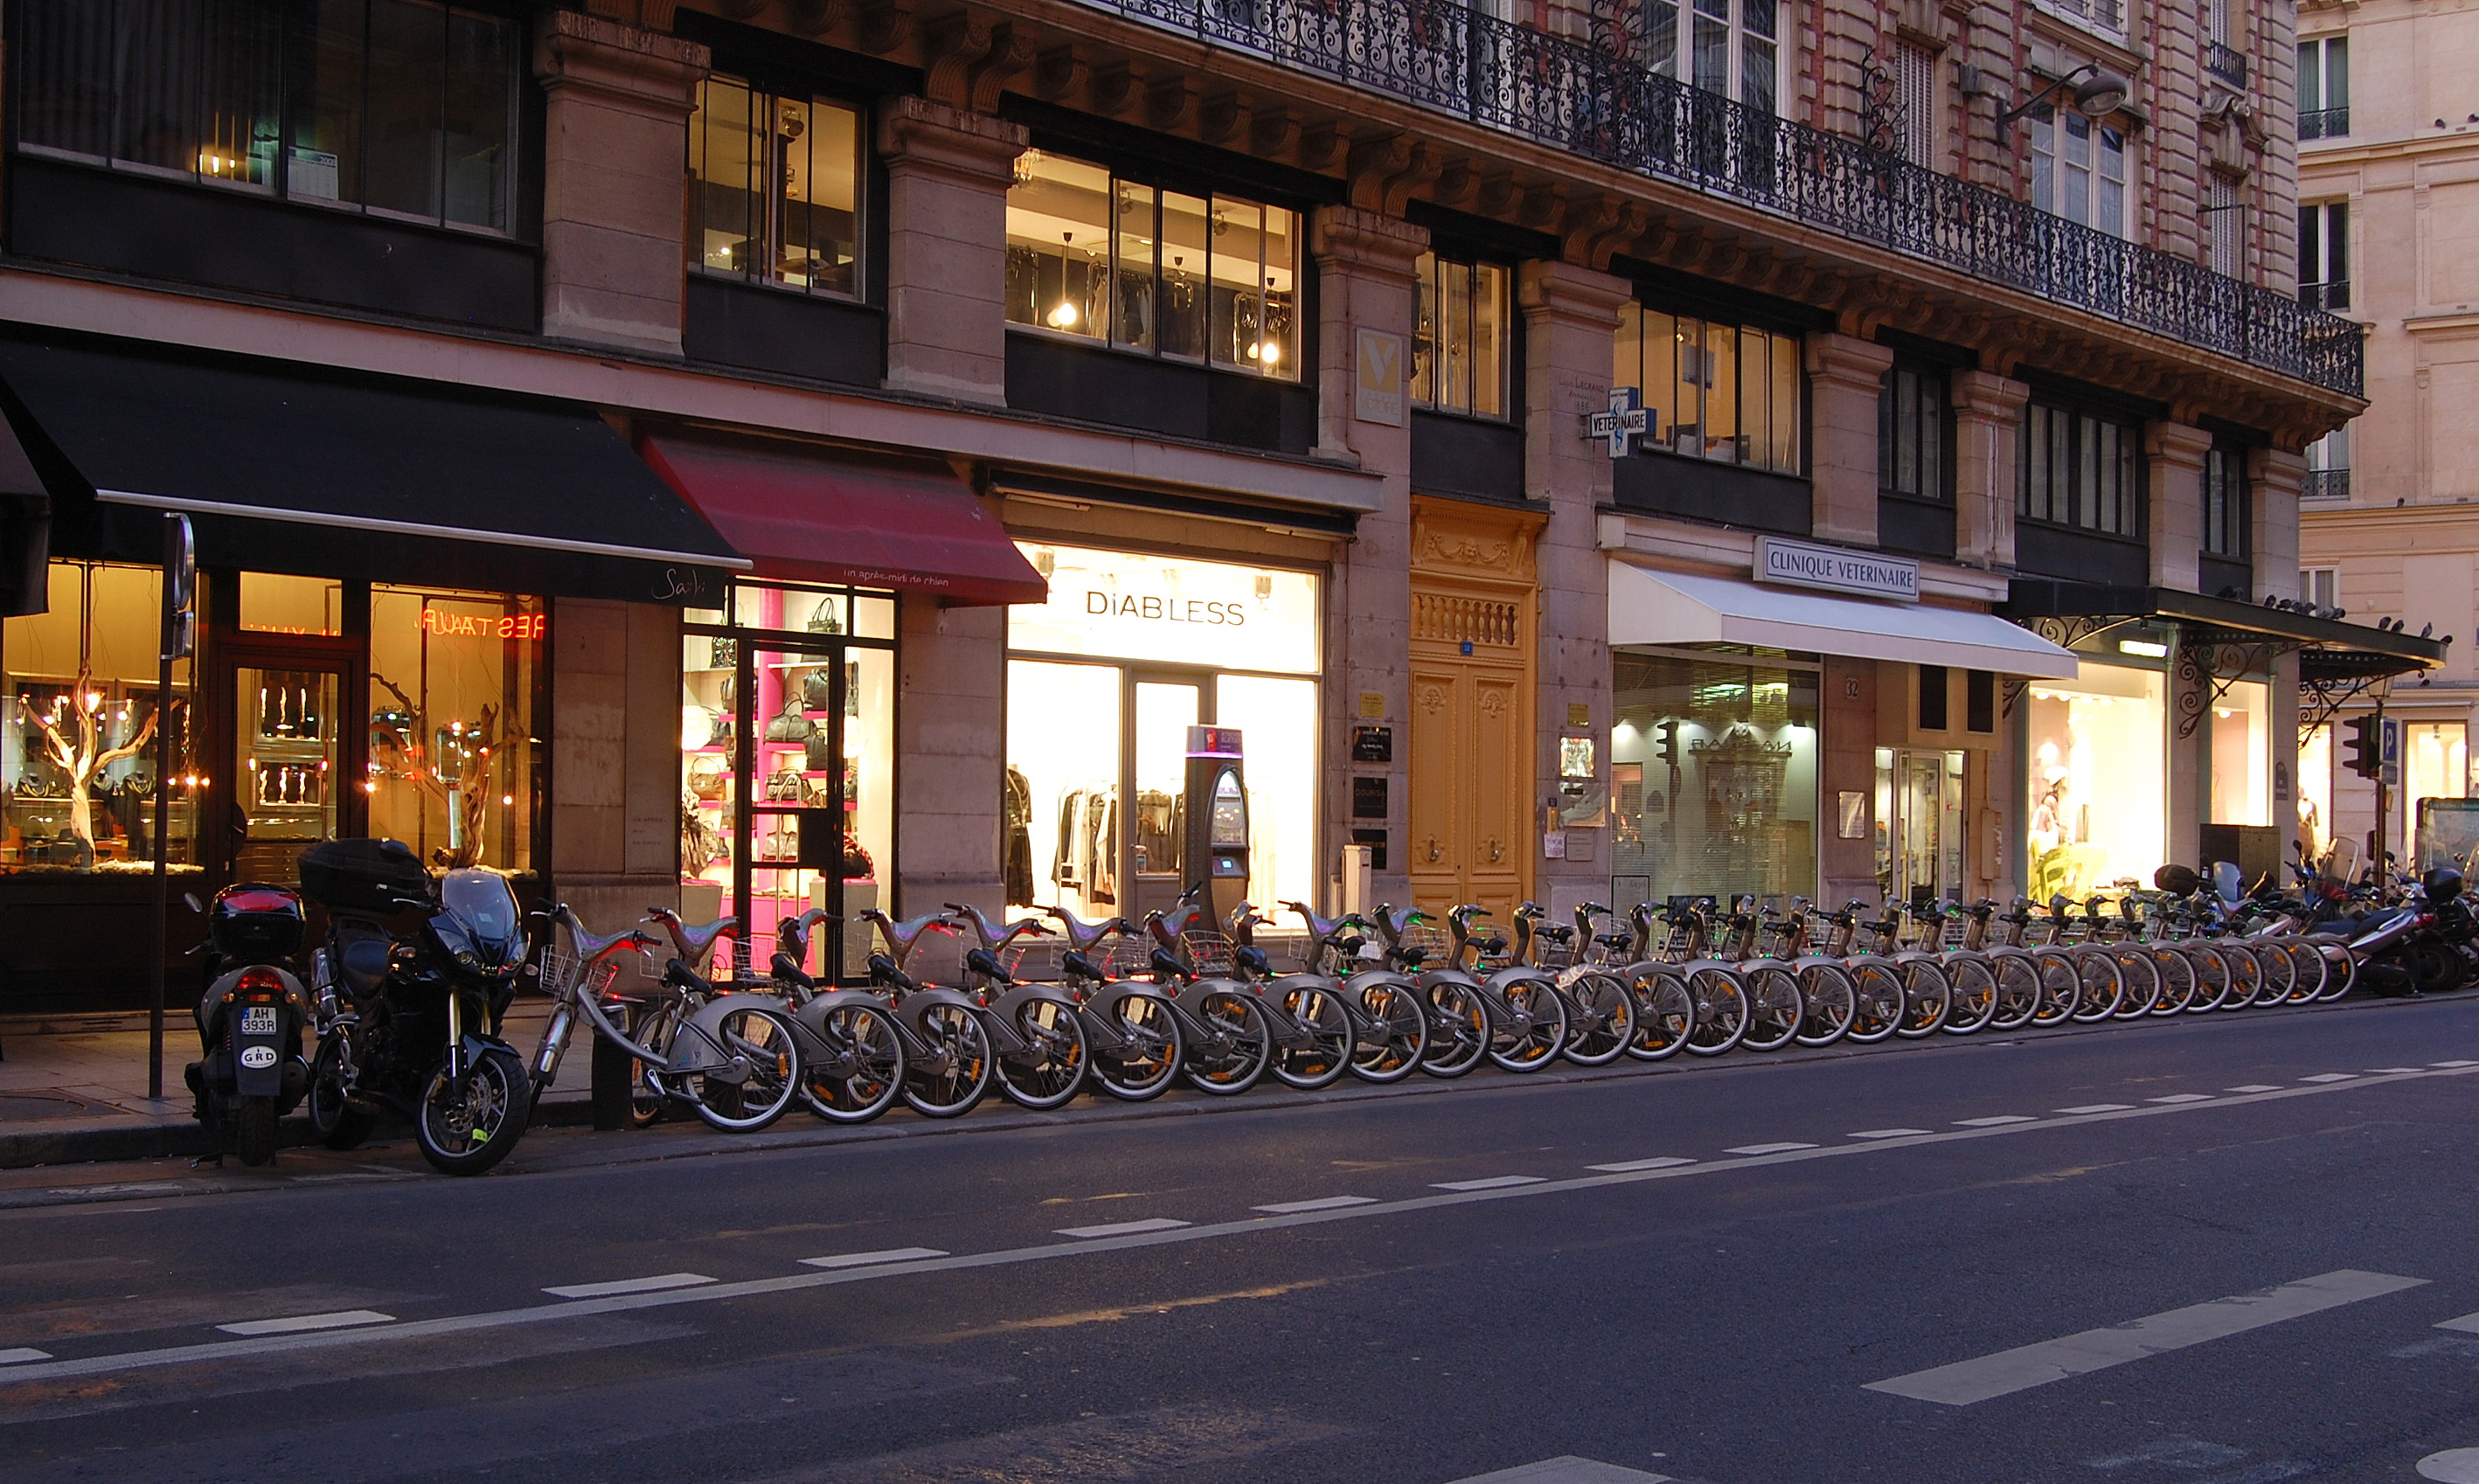 Velib Station in France